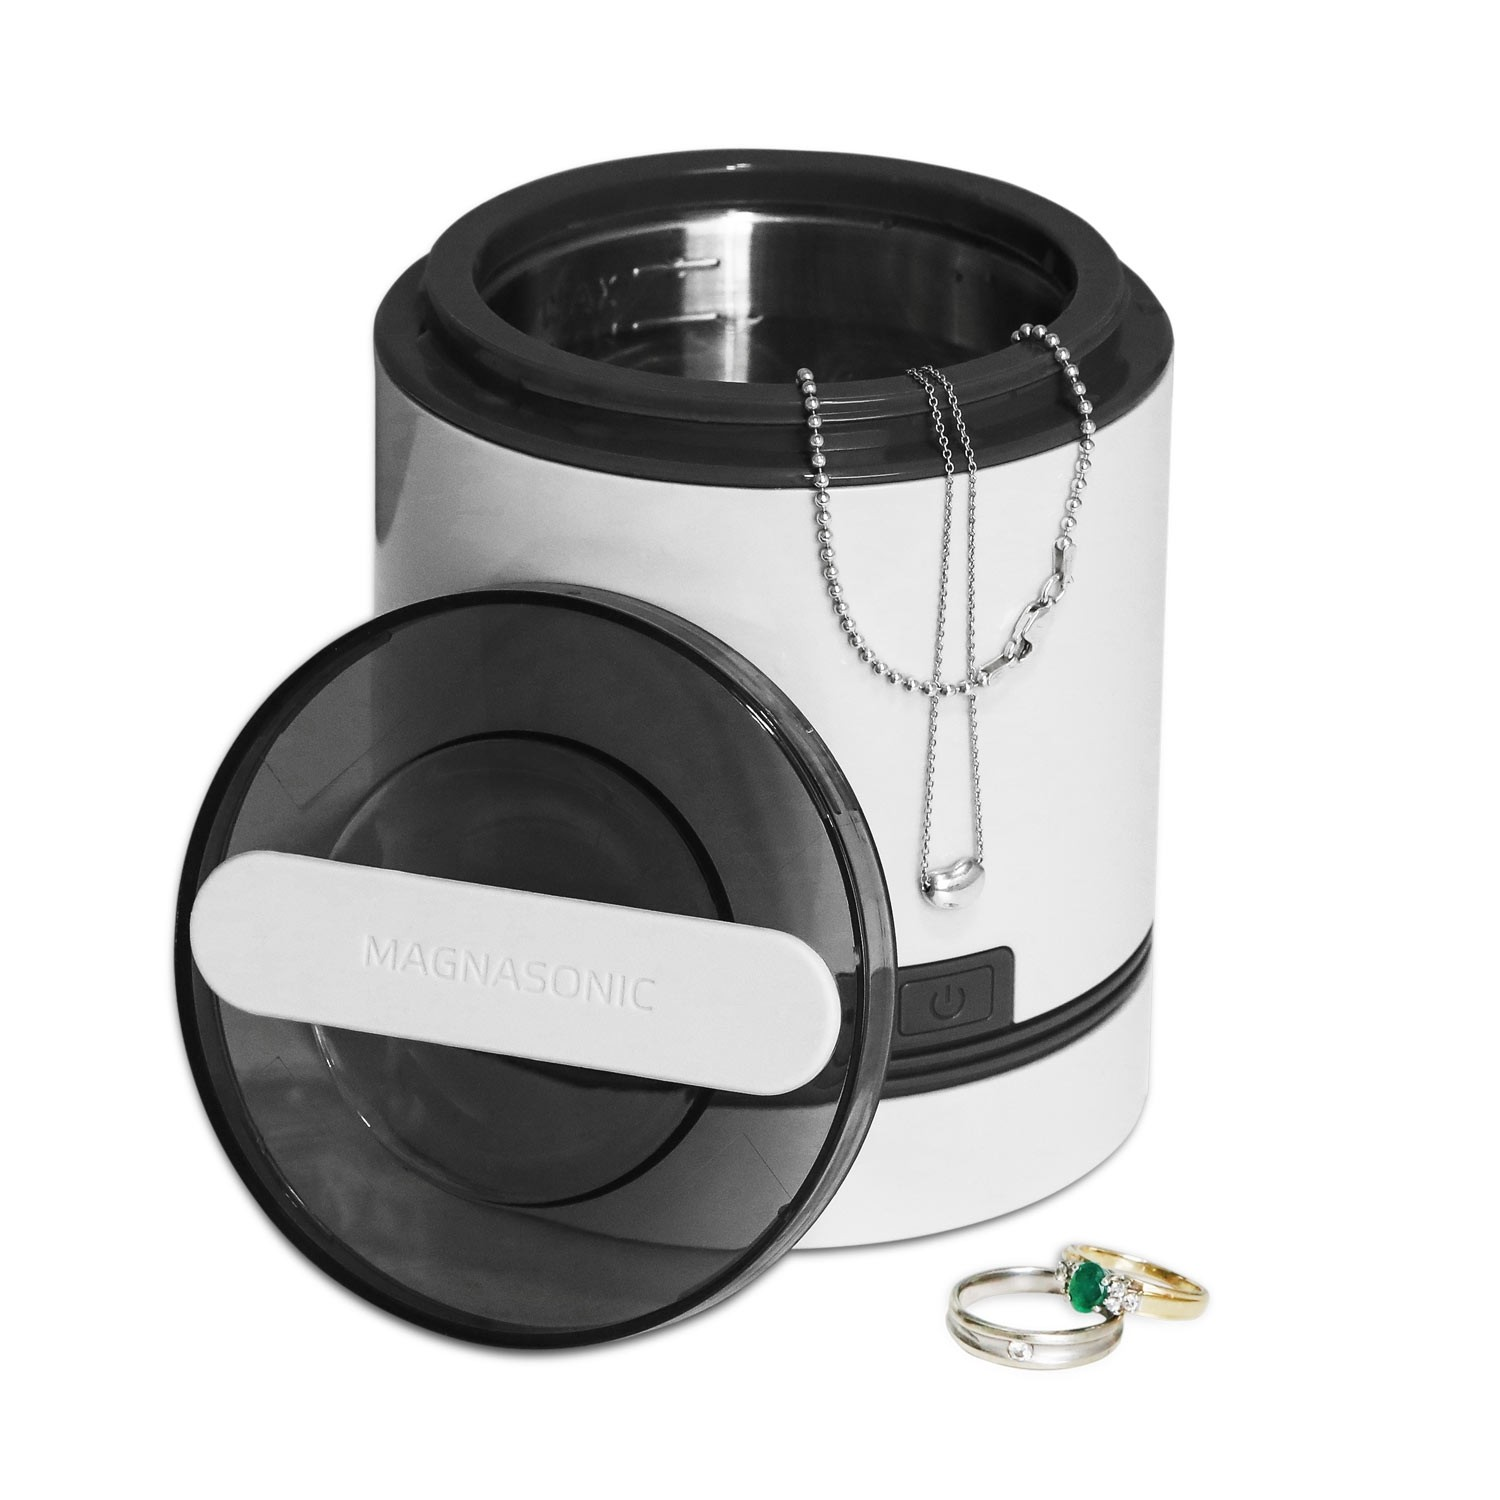 Ultrasonic Dental & Jewelry Cleaner - Overflowing with Jewelry